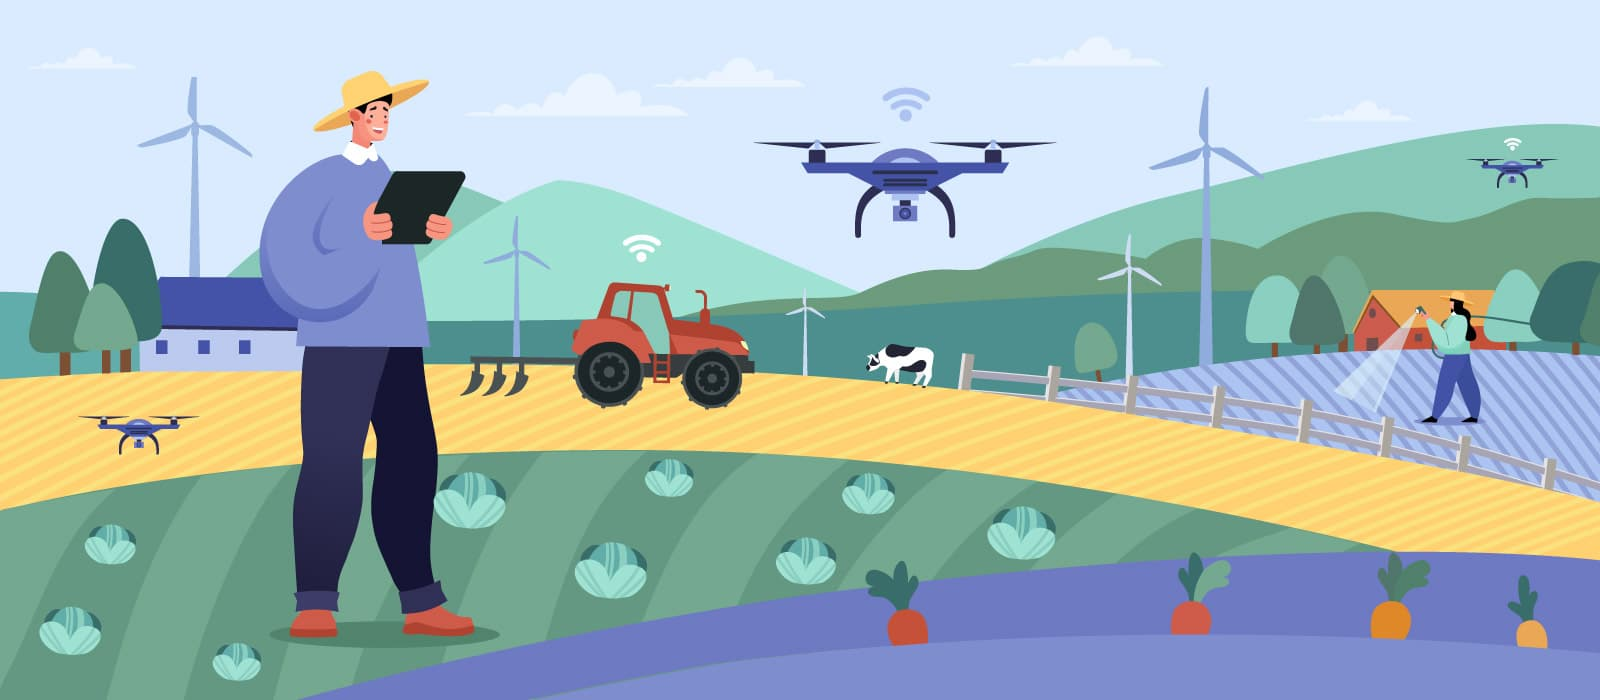 Blockchain in Agriculture: Benefits, Use Cases and Platforms That Are Disrupting the Industry